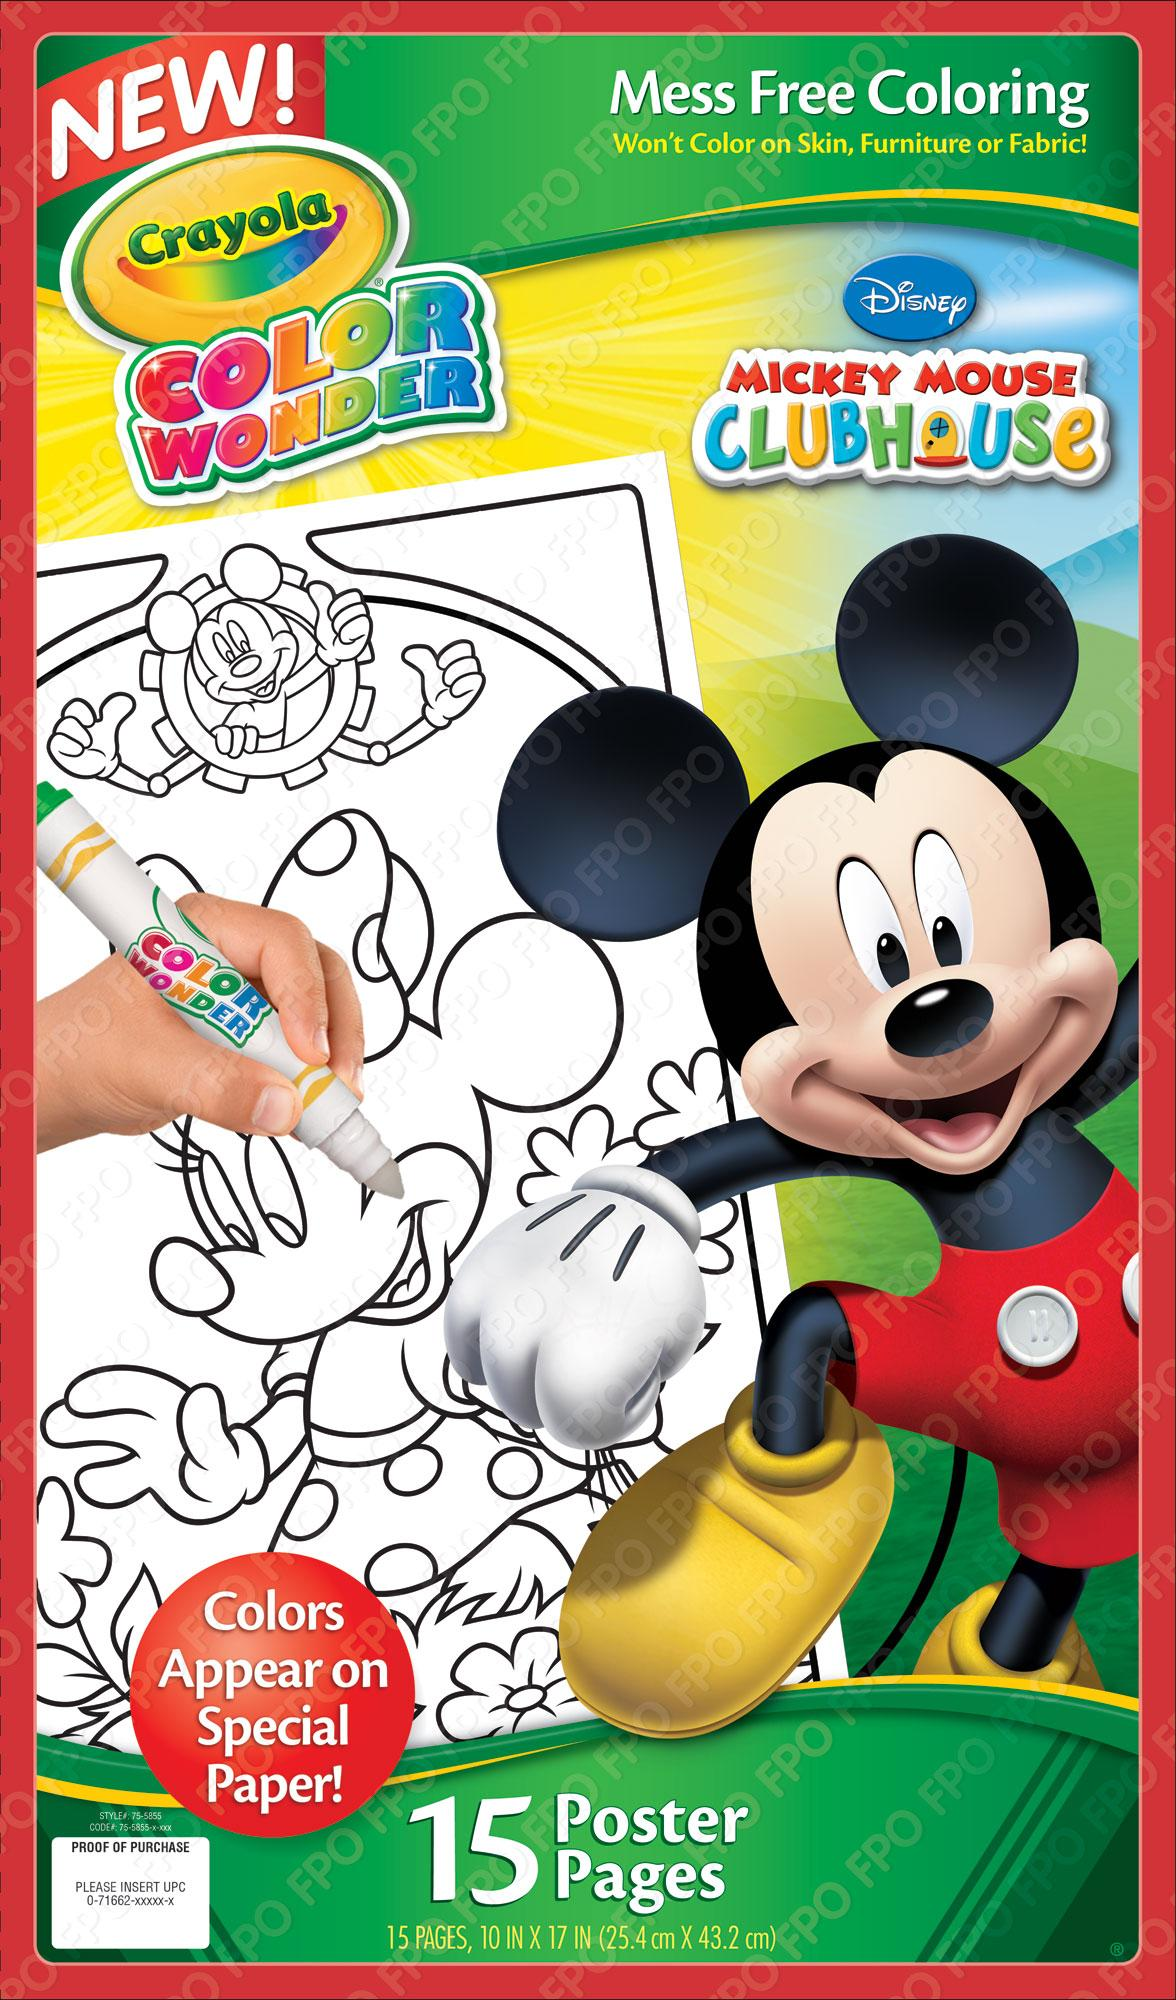 e32b5db5 be99 48c6 a442 7a23e9326510._CB329469299_ including mickey mouse clubhouse giant coloring pages zulily on mickey mouse clubhouse giant coloring book besides disney mickey mouse clubhouse coloring activity book mickey on mickey mouse clubhouse giant coloring book together with mickey mouse clubhouse coloring pad book toys r us on mickey mouse clubhouse giant coloring book also with crayola coloring book disney s mickey mouse clubhouse target on mickey mouse clubhouse giant coloring book